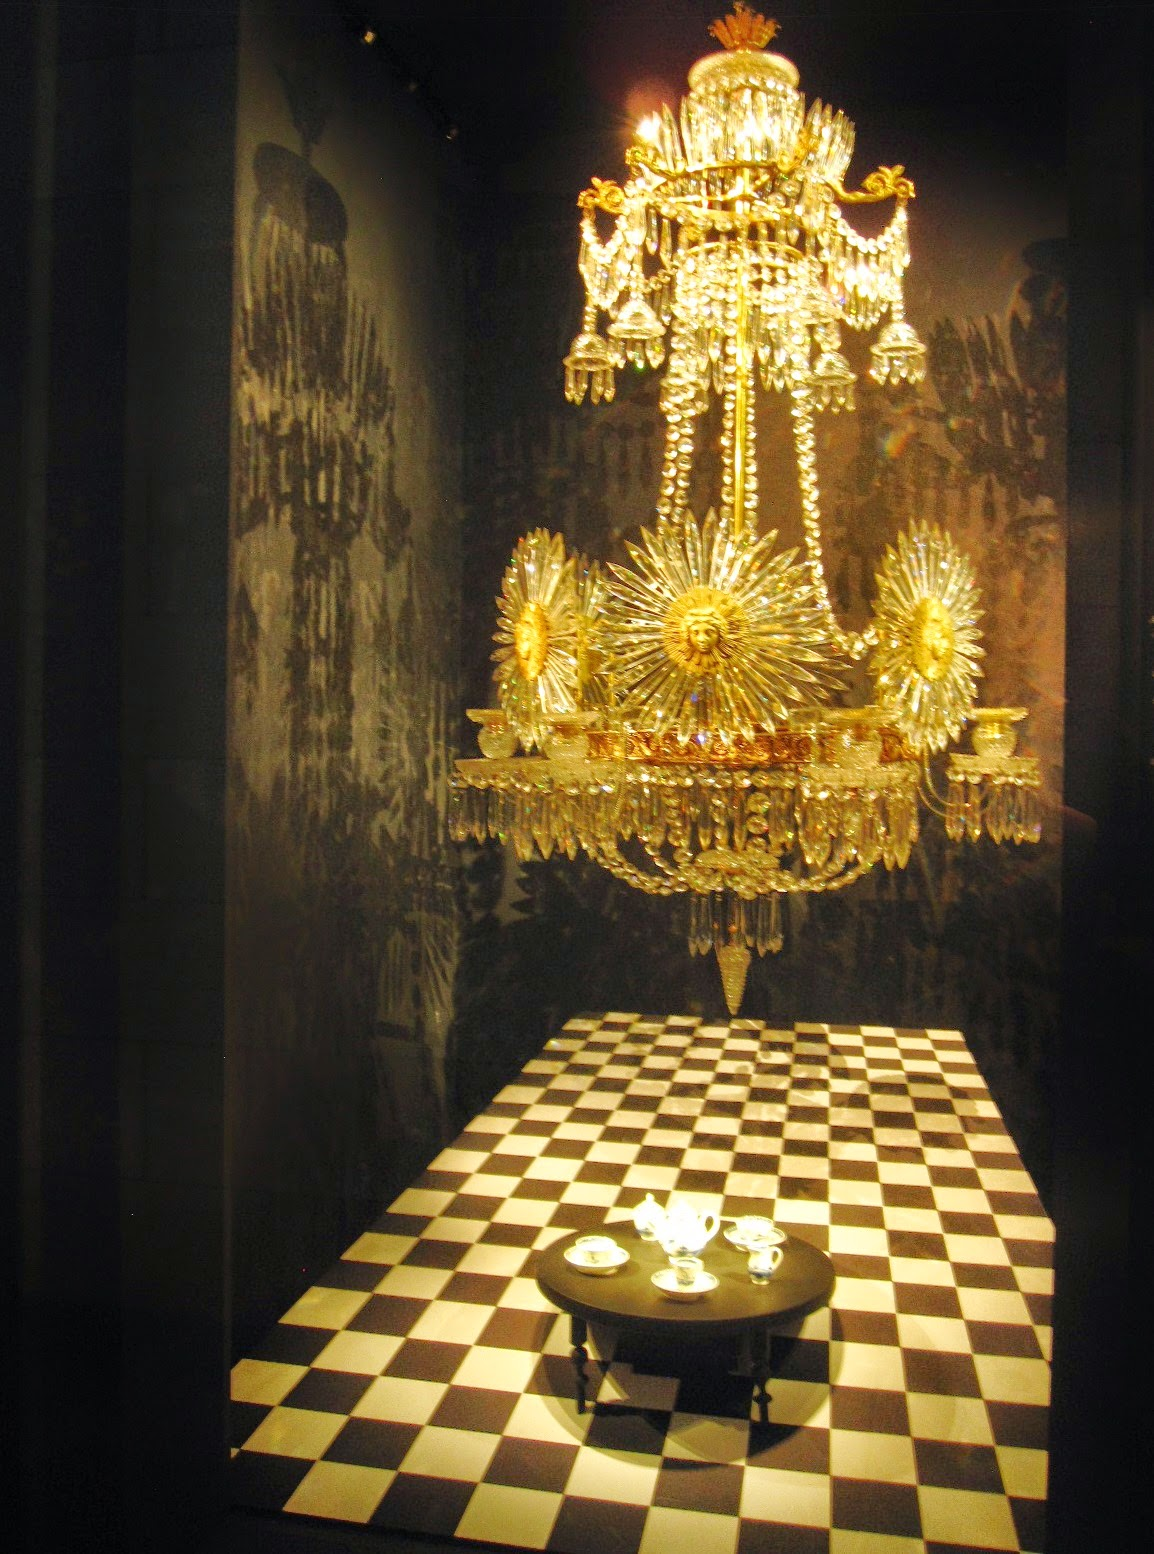 Miniature tea set on display in a museum, on a miniature antique table with a full-sized antique chandelier above.